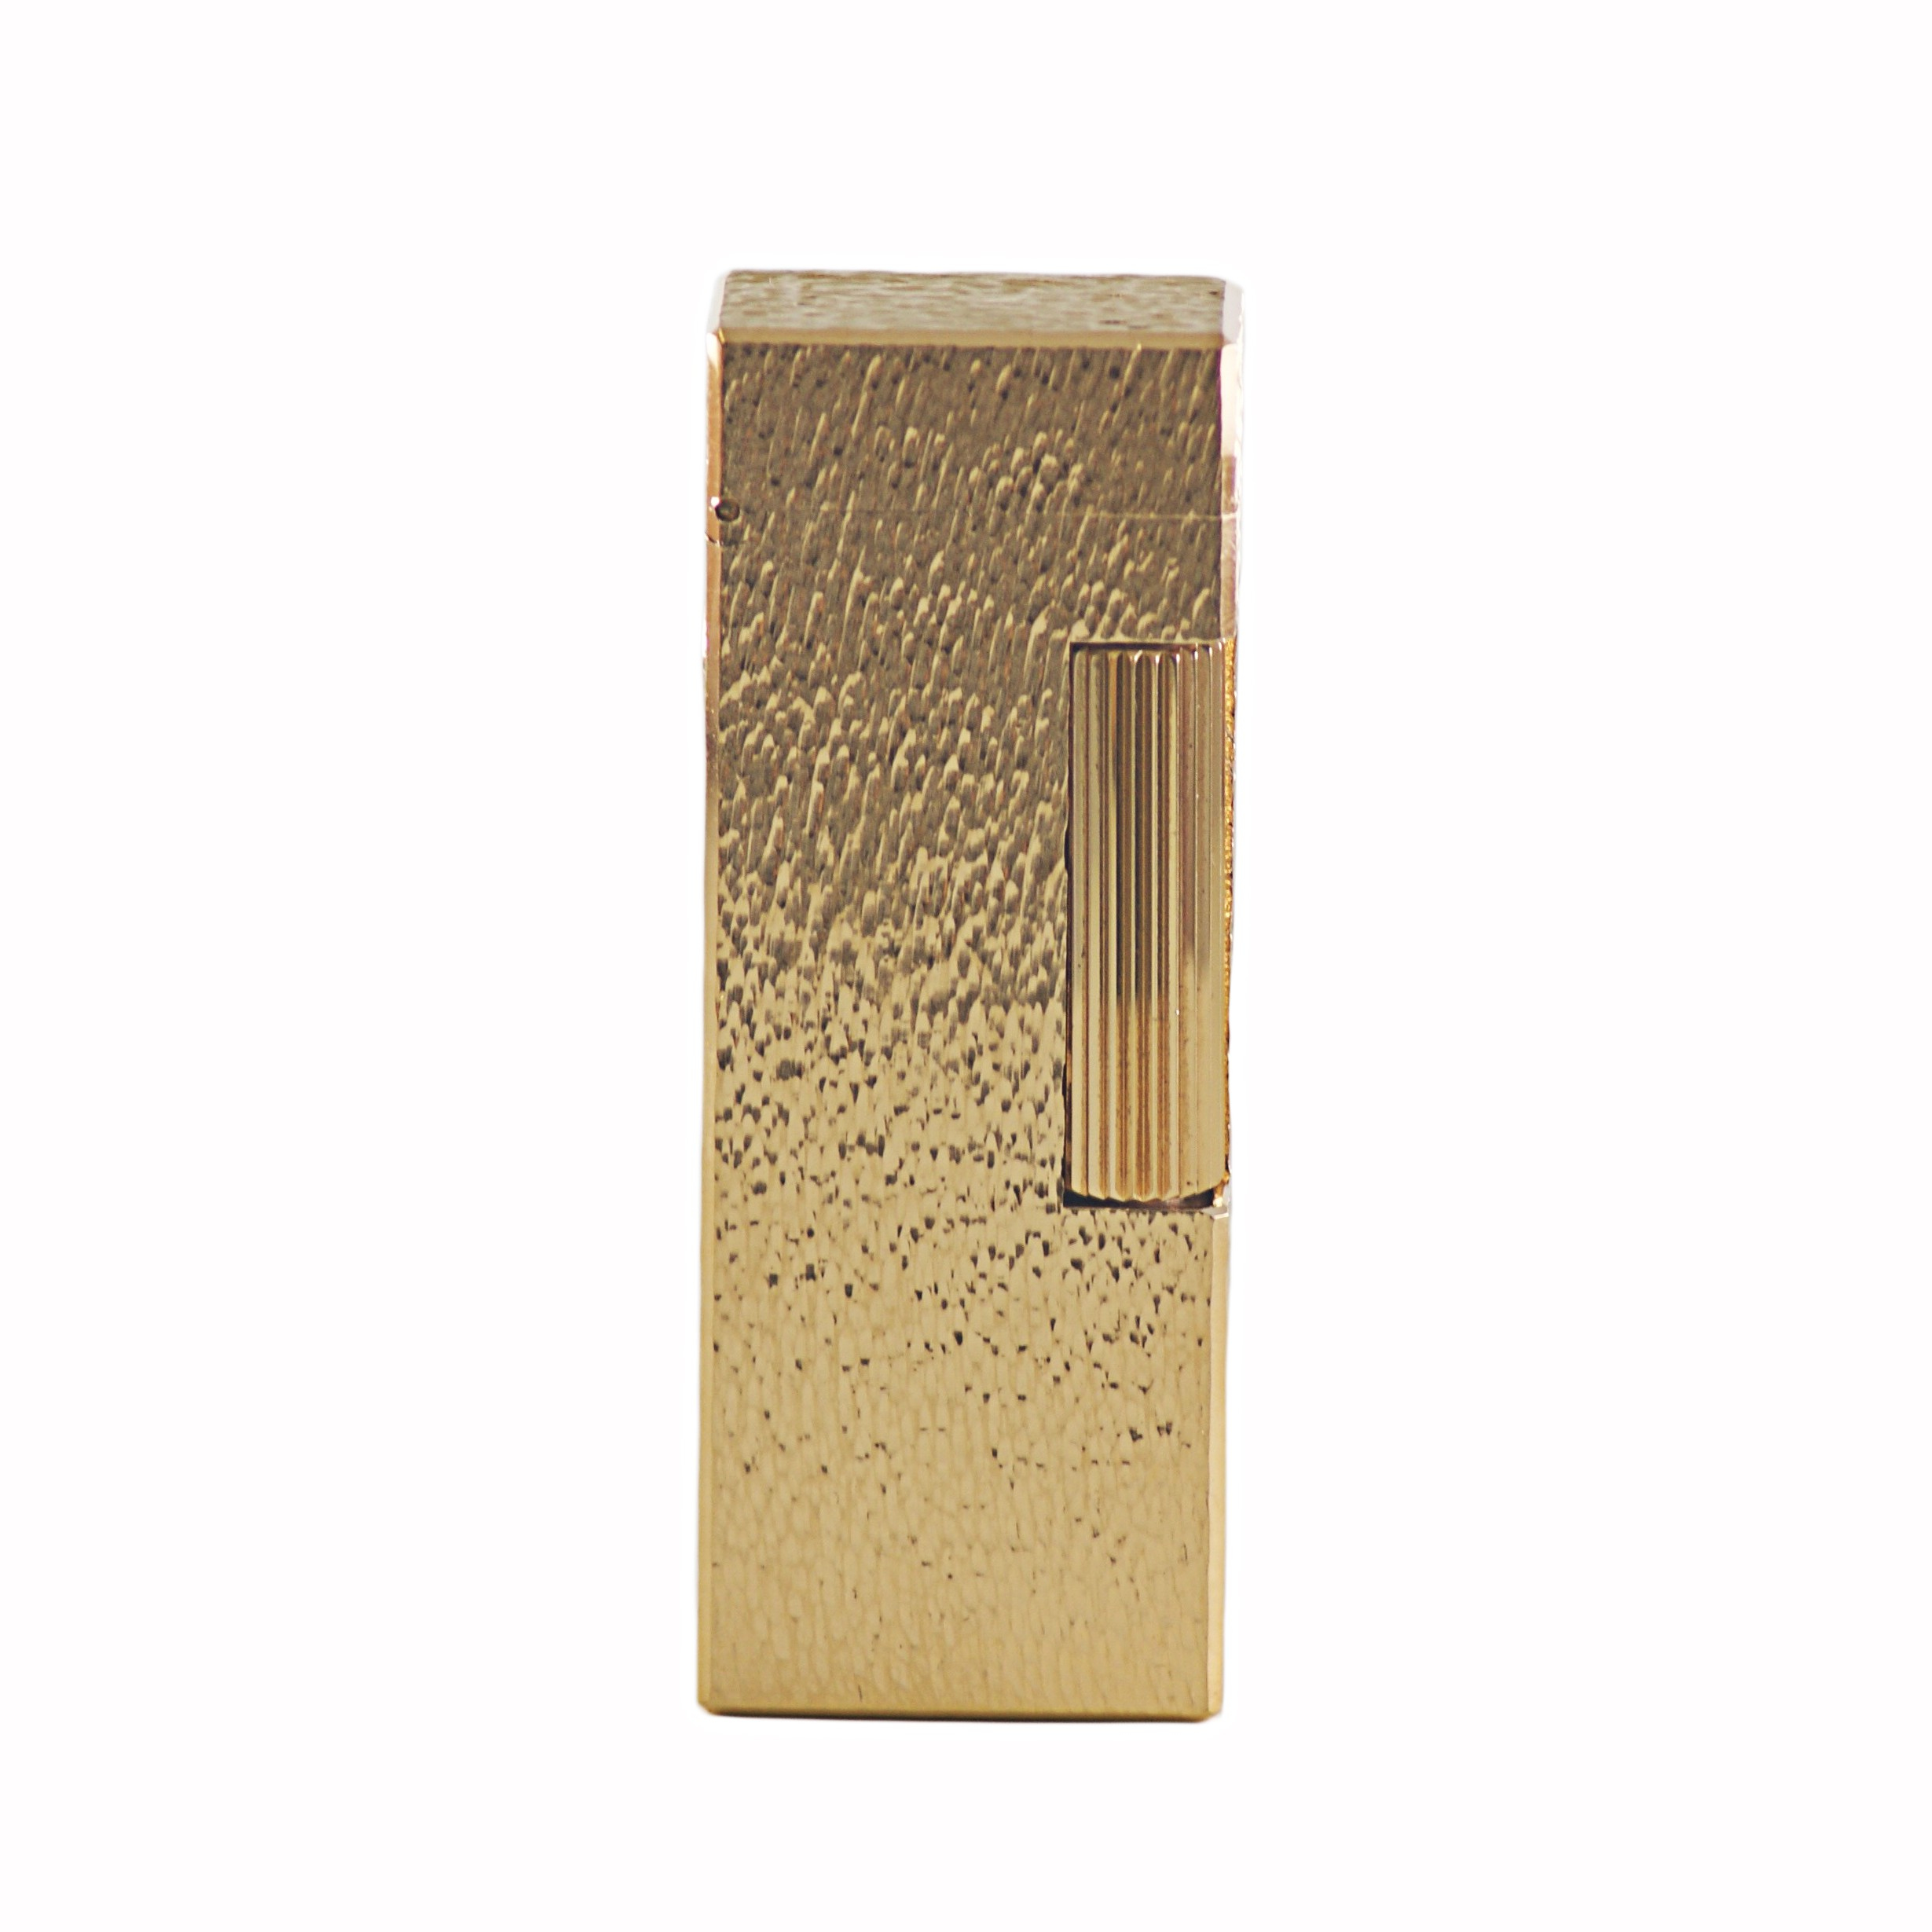 Dunhill Lighter rollagas gold - Sybarite Pipe